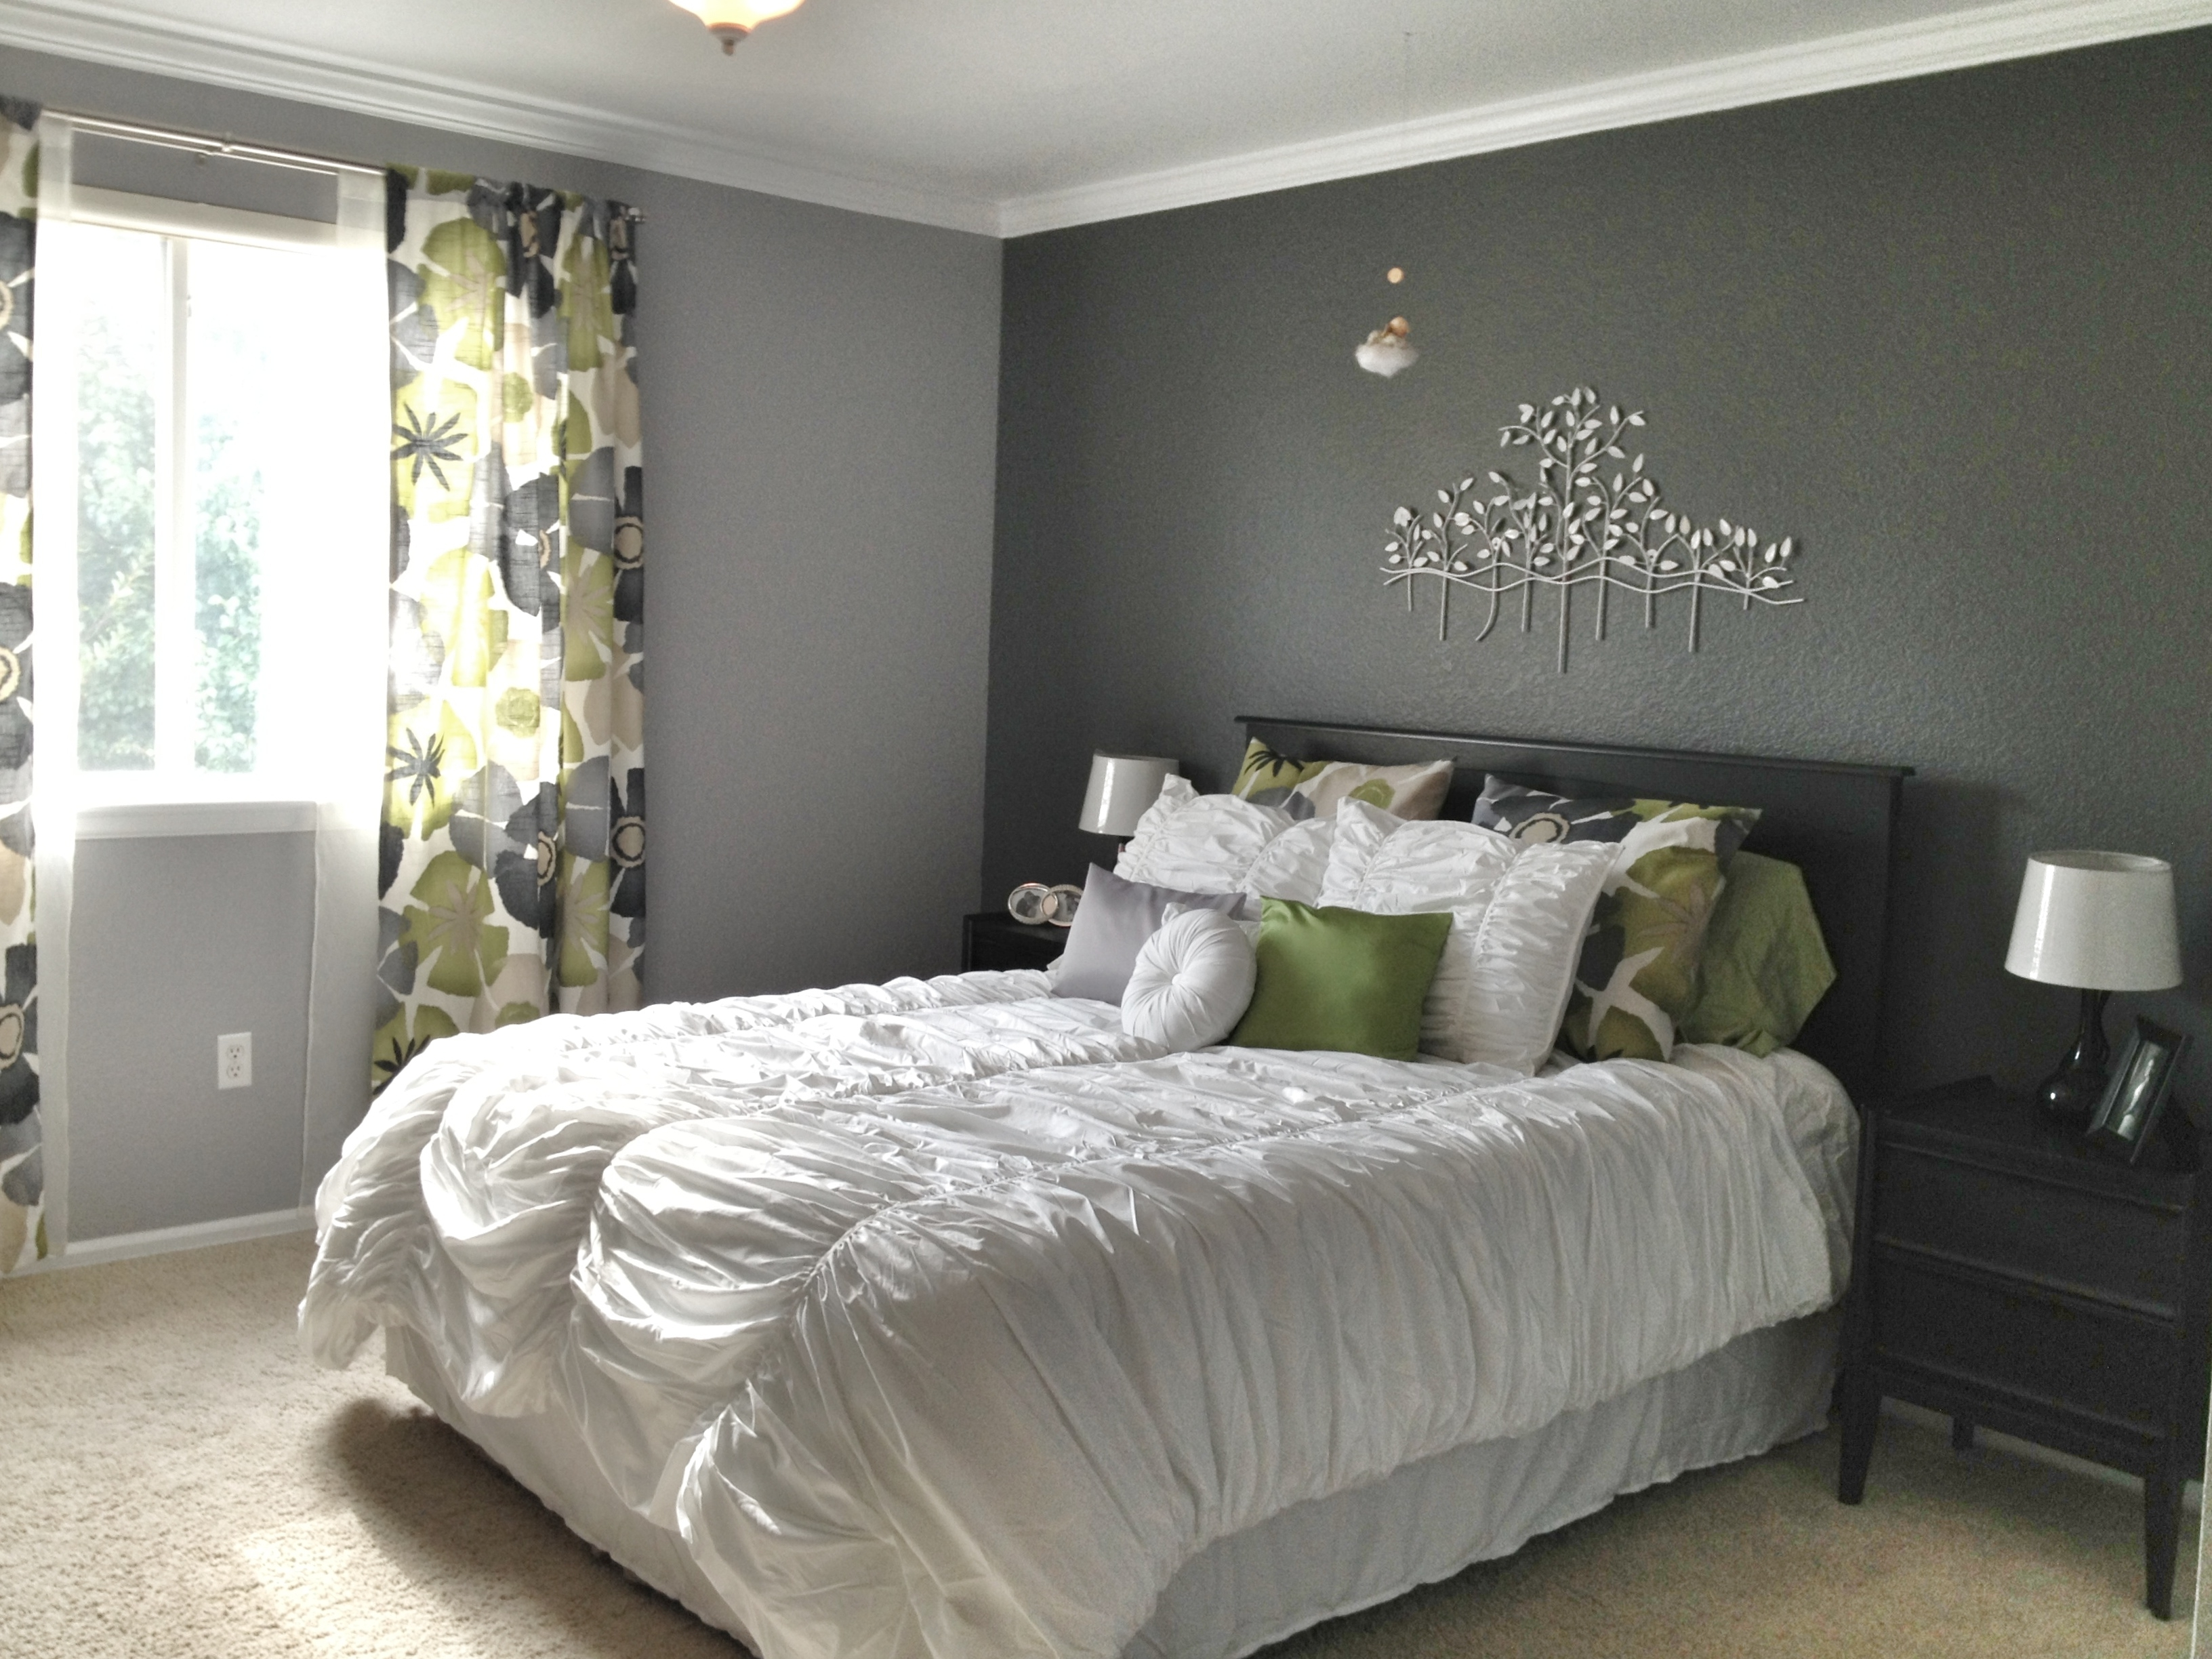 Bedroom Design: Pictures Of Accent Walls Bedroom Wall Decor Ideas With Well Known Wallpaper Bedroom Wall Accents (View 14 of 15)